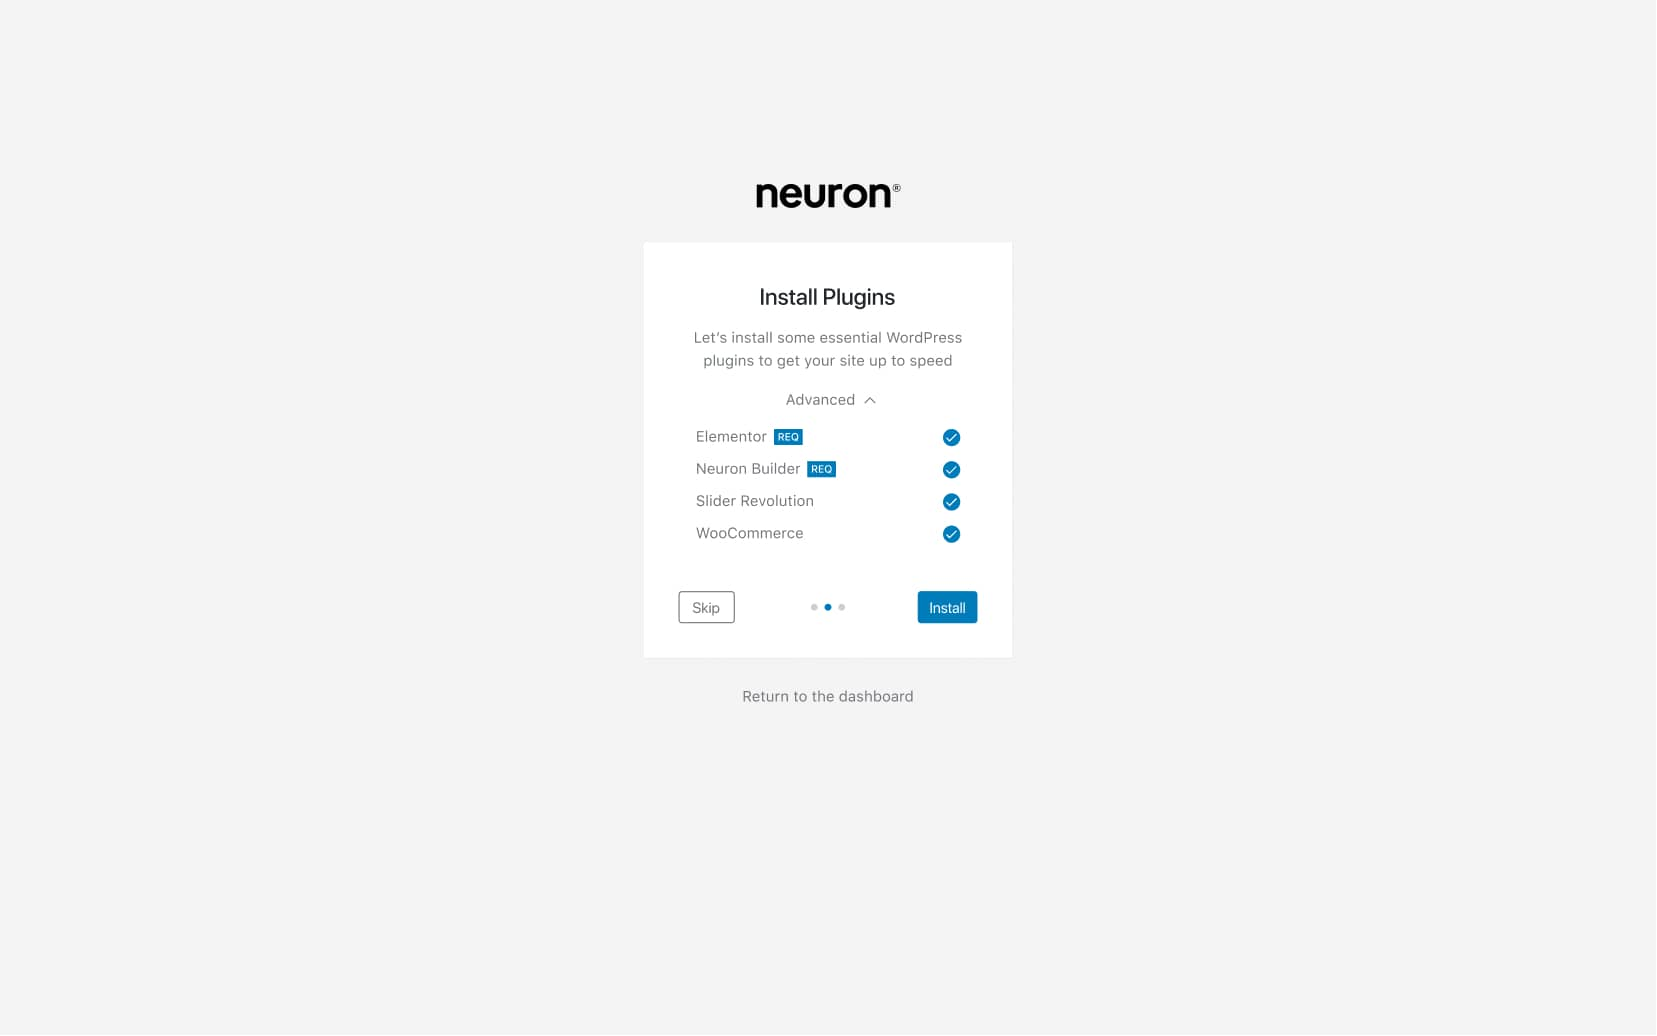 How to install Slider Revolution with Neuron Themes